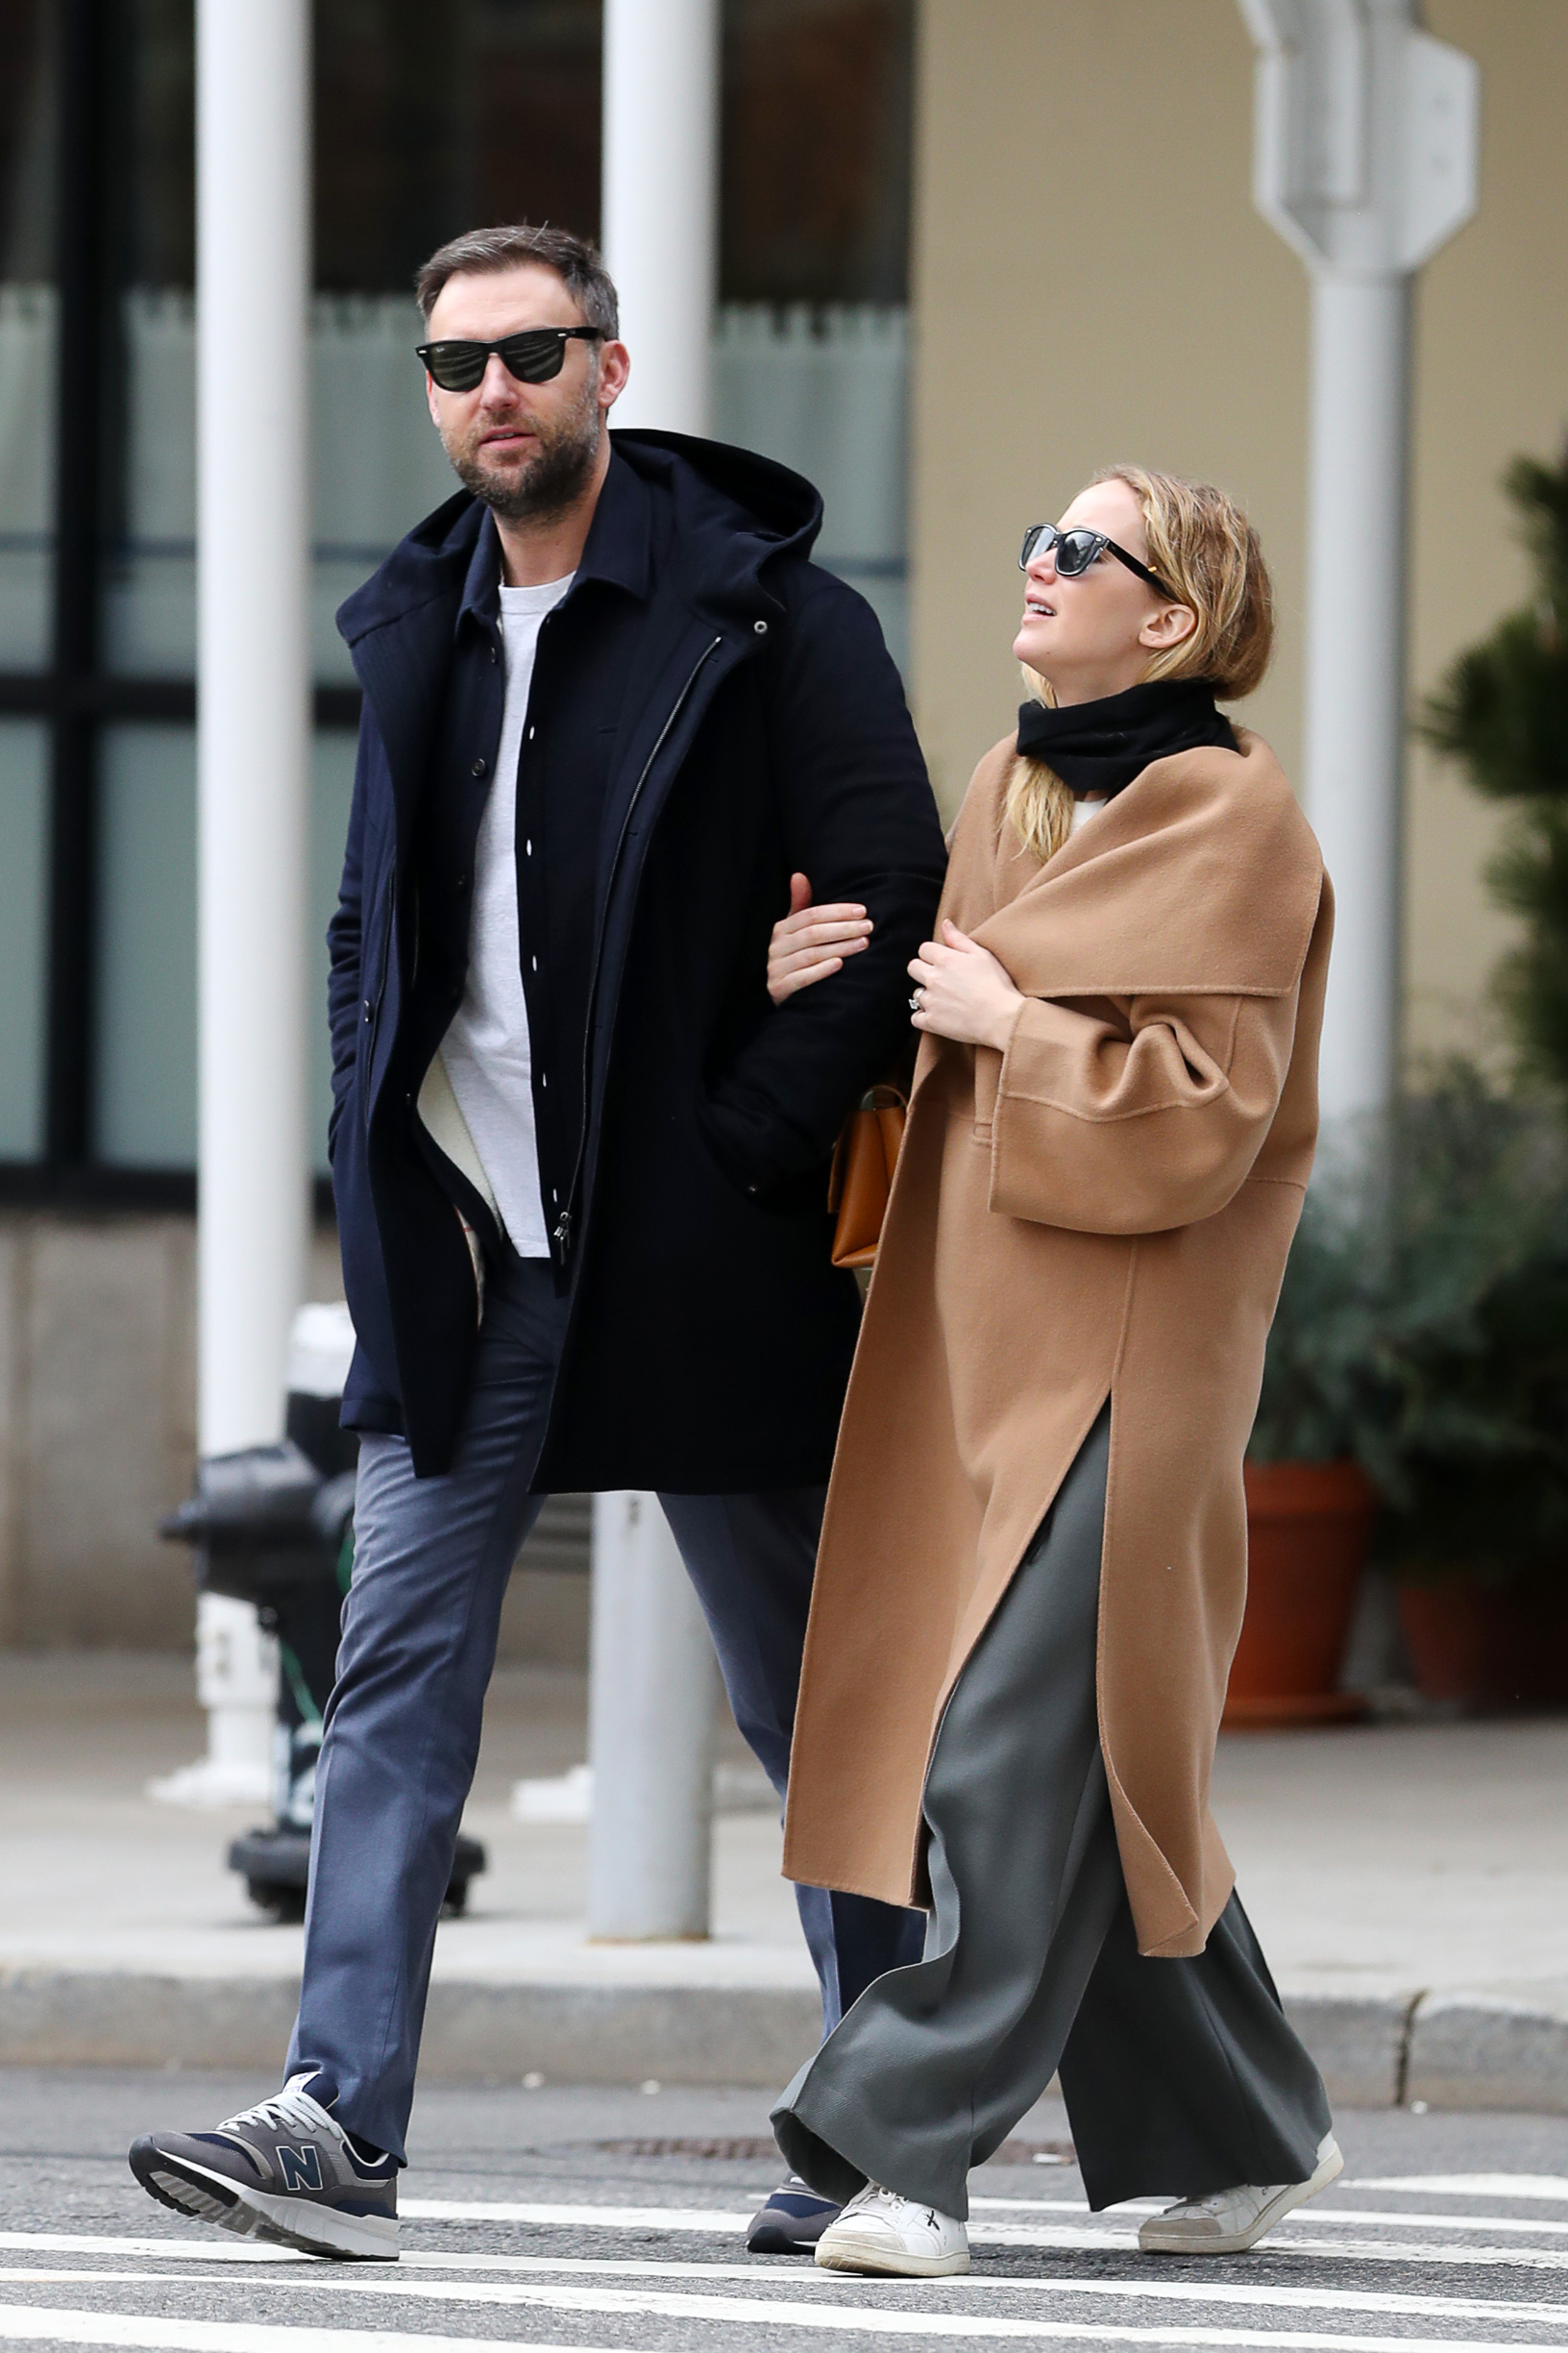 02/04/2020 EXCLUSIVE: Jennifer Lawrence and Cooke Maroney are spotted on a romantic arm-in-arm stroll in New York City. The 29 year old A-list actress carried a Marc Jacobs bag and wore a black scarf, Toteme 'Annecy' oversized wool and cashmere-blend coat, baggy trousers, and Christian Dior 'D Bee' sneakers., Image: 496445992, License: Rights-managed, Restrictions: Exclusive NO usage without agreed price and terms. Please contact sales@theimagedirect.com, Model Release: no, Credit line: TheImageDirect.com / The Image Direct / Profimedia